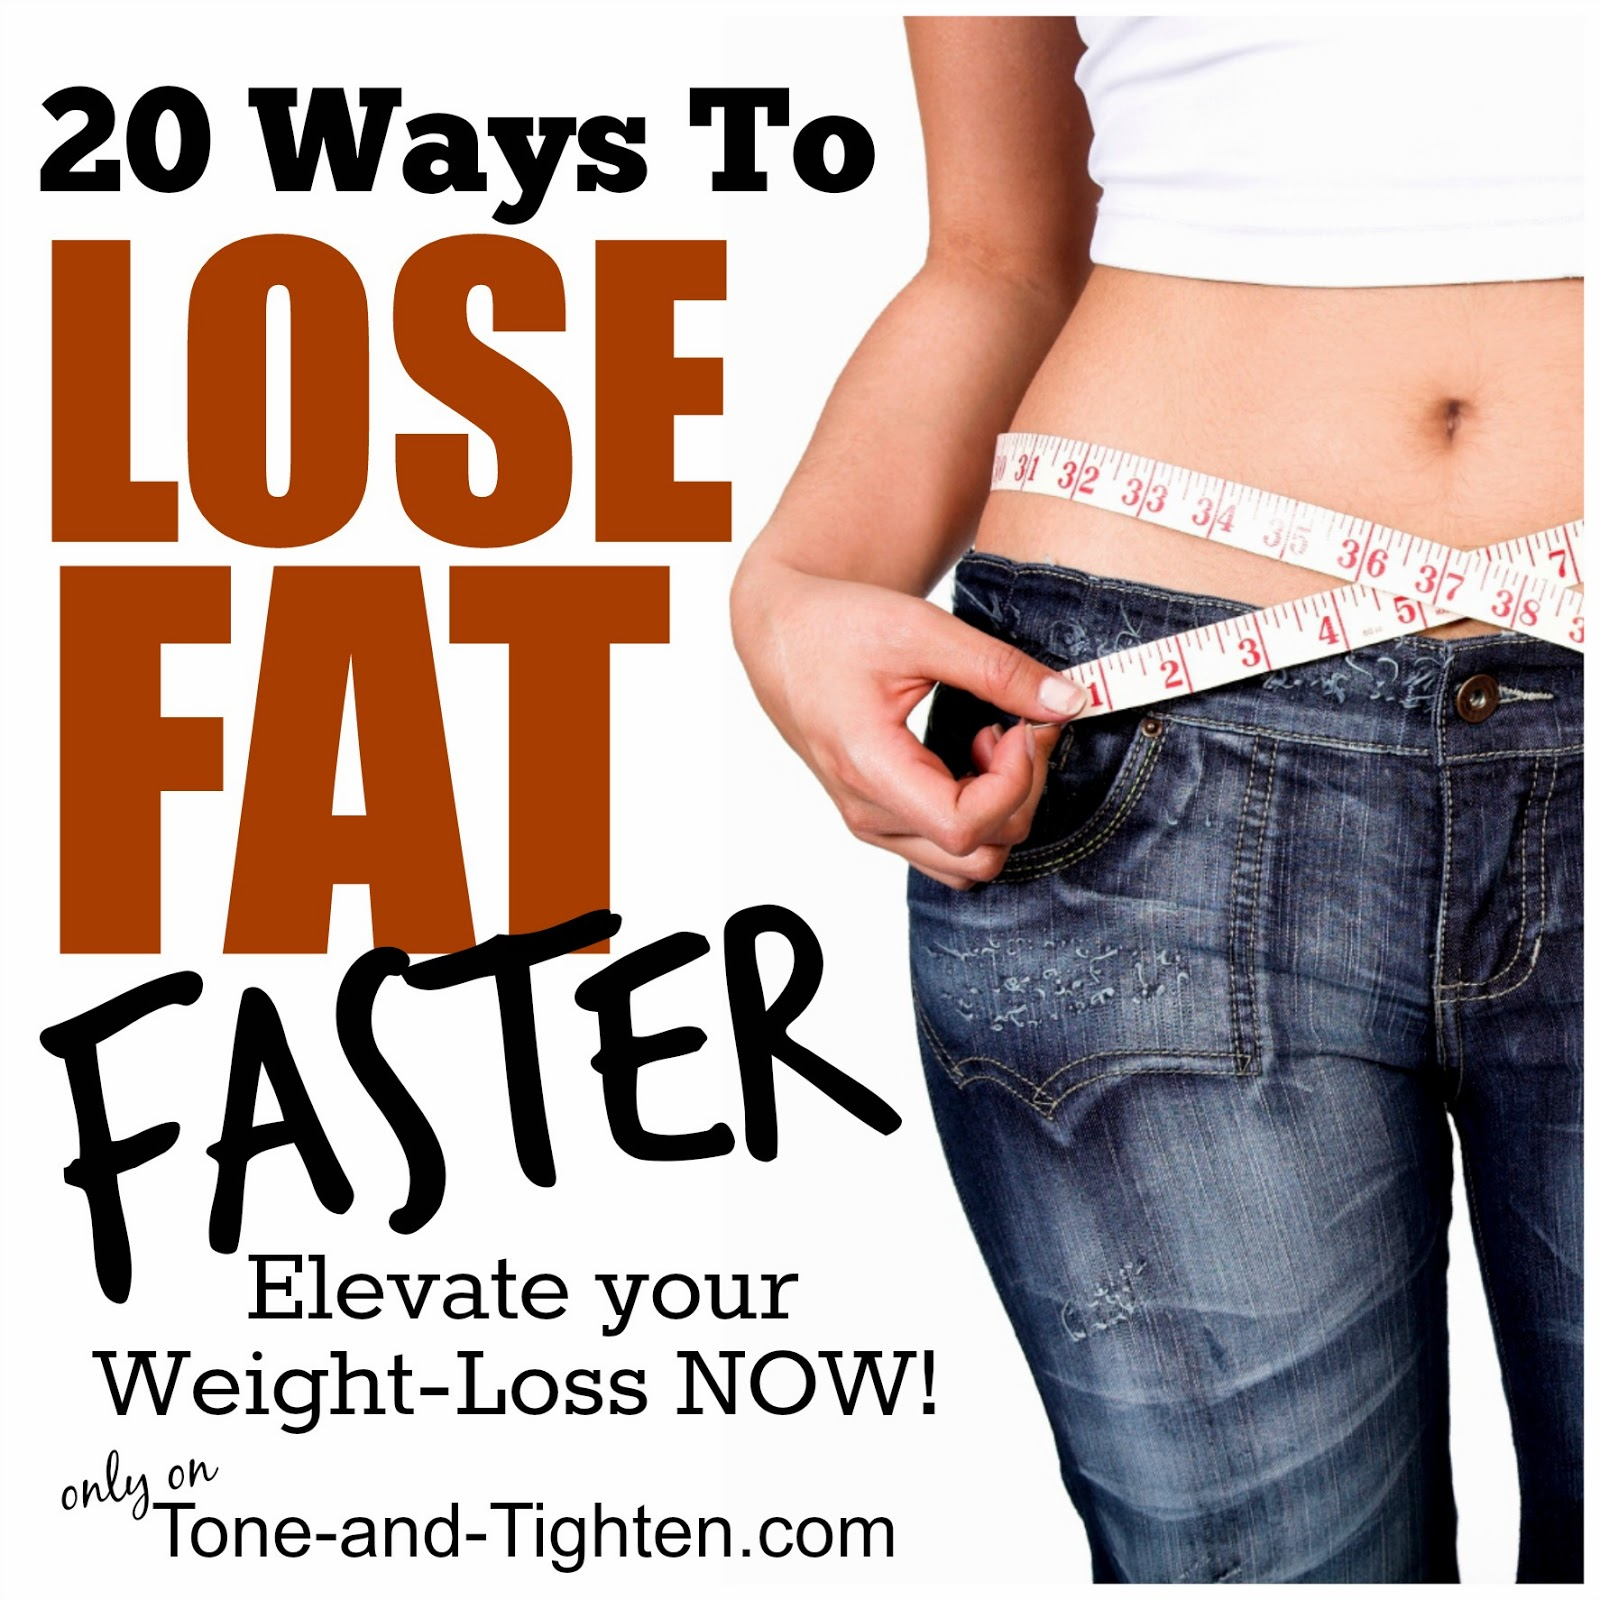 Best way to lose weight and tone up quickly